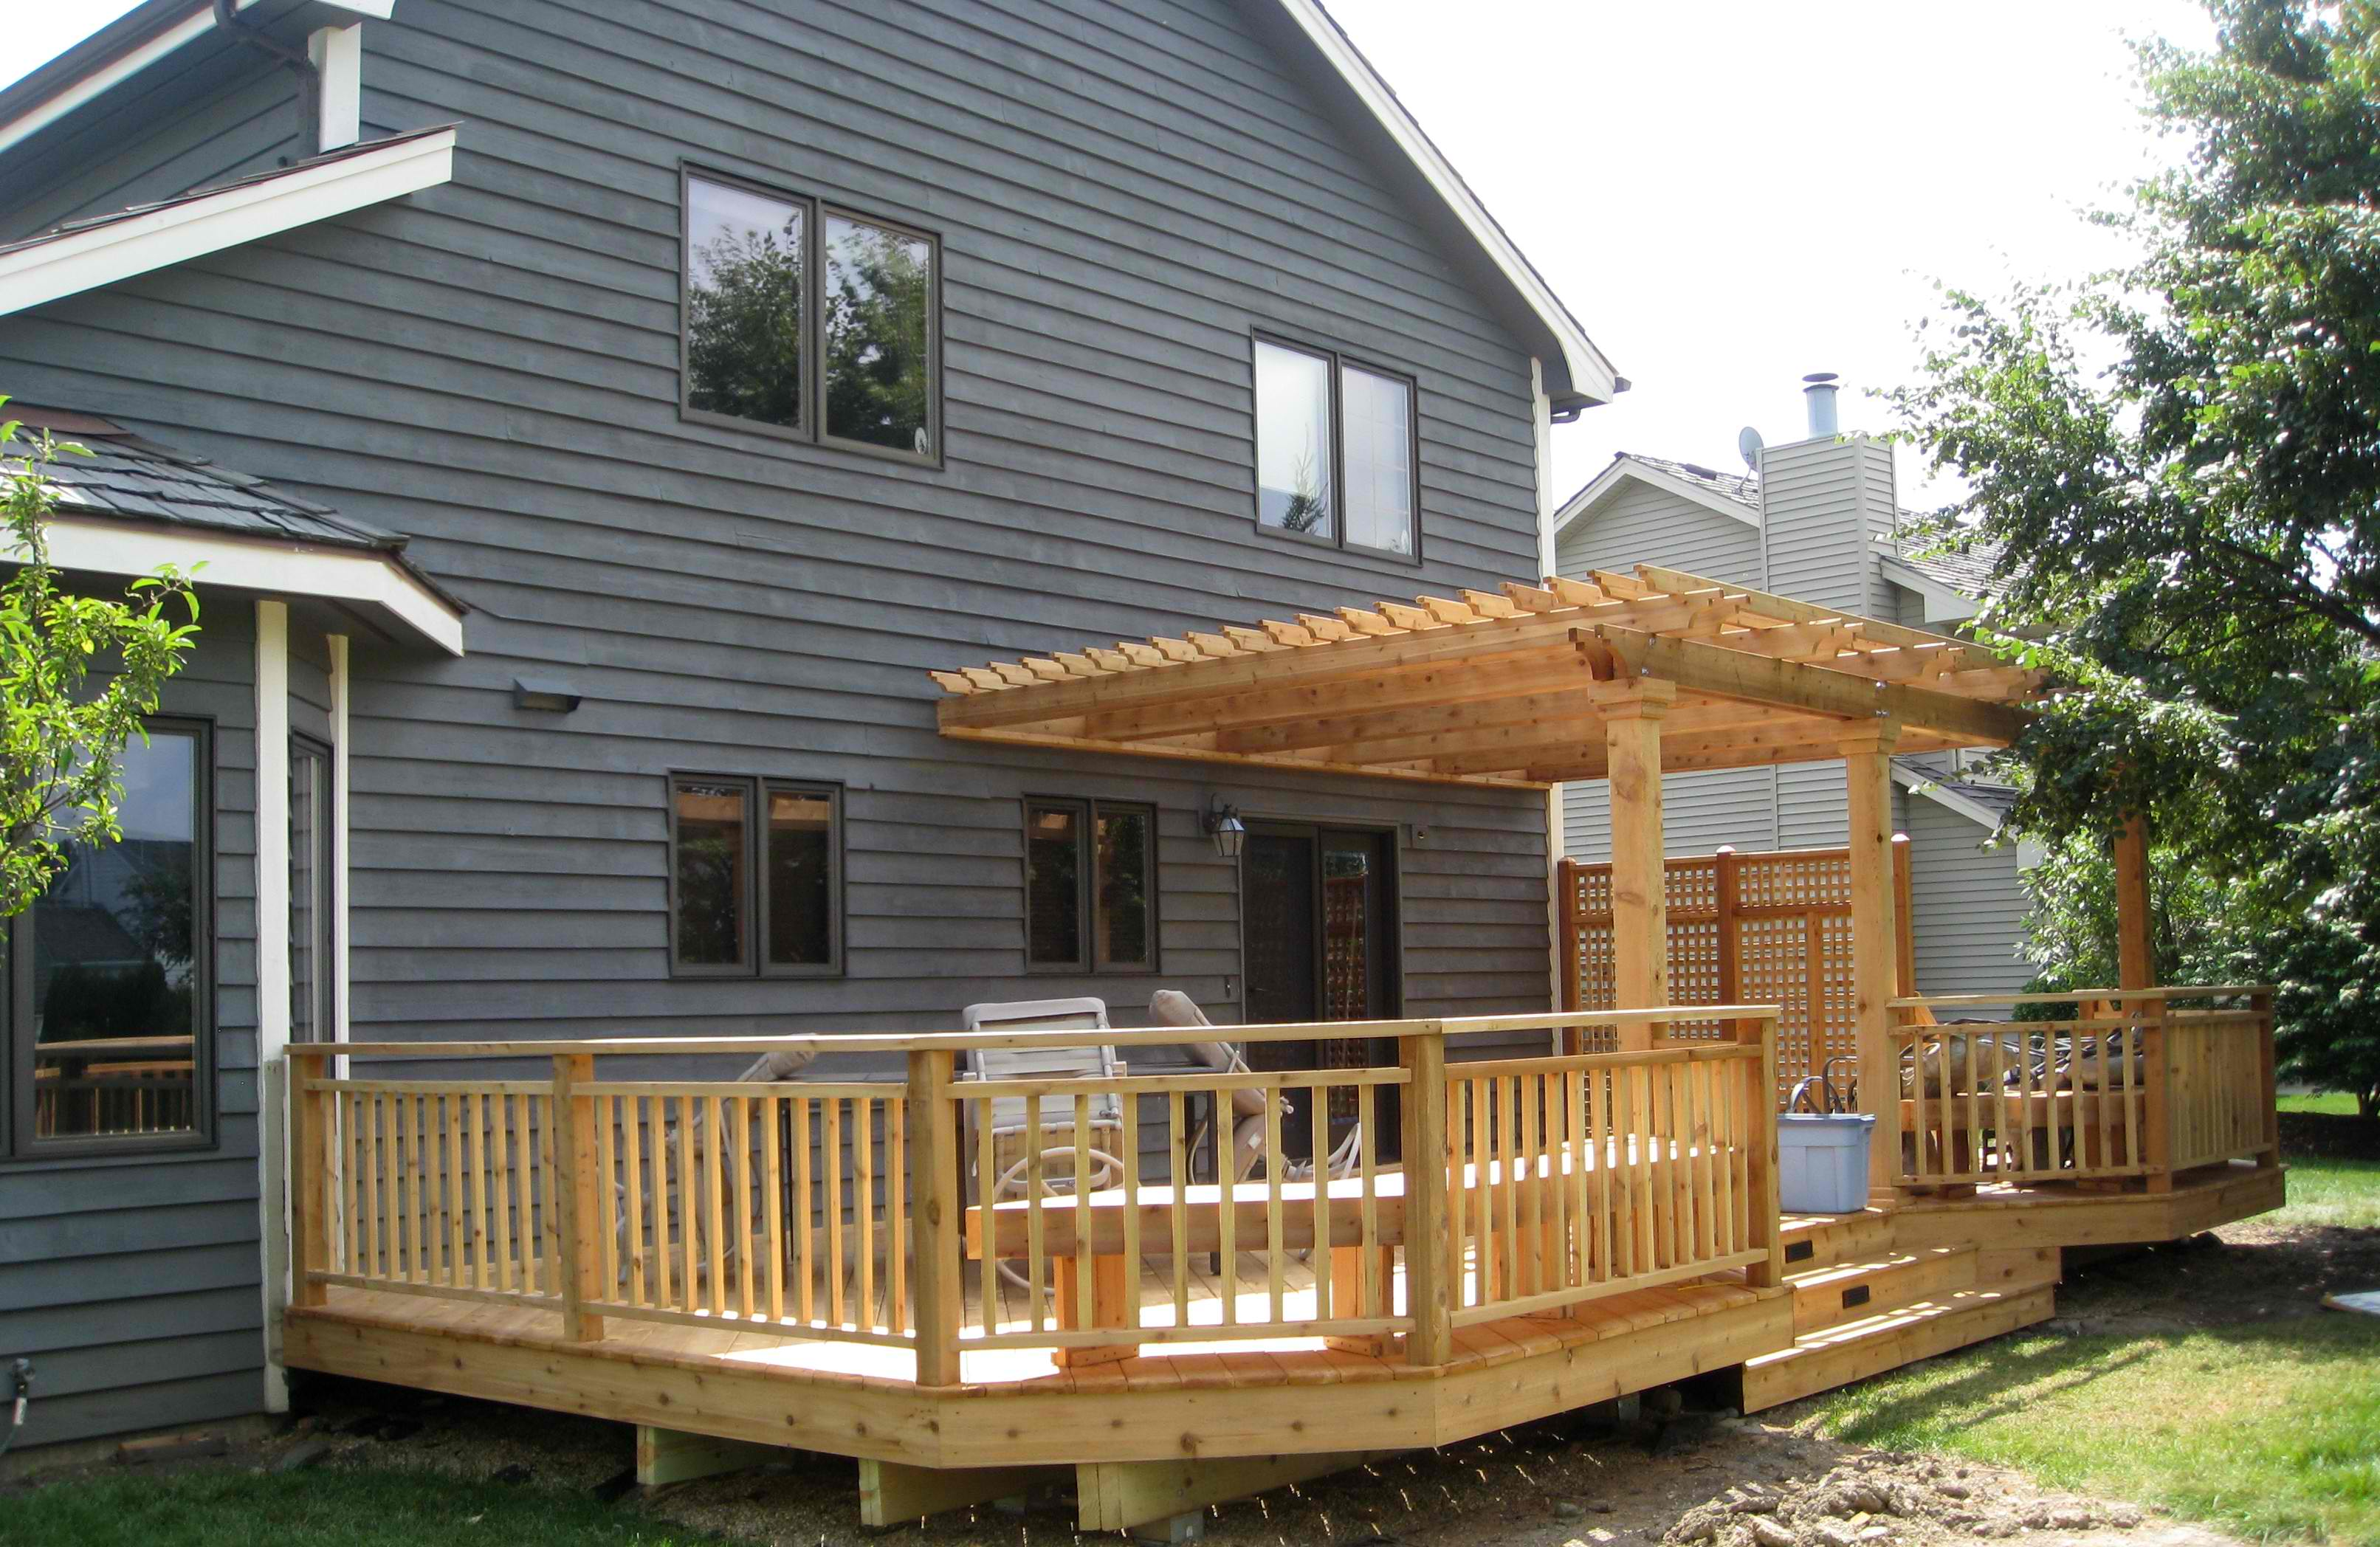 Decks & Light Construction Projects | Winston Salem ... on Patio With Deck Ideas id=58281